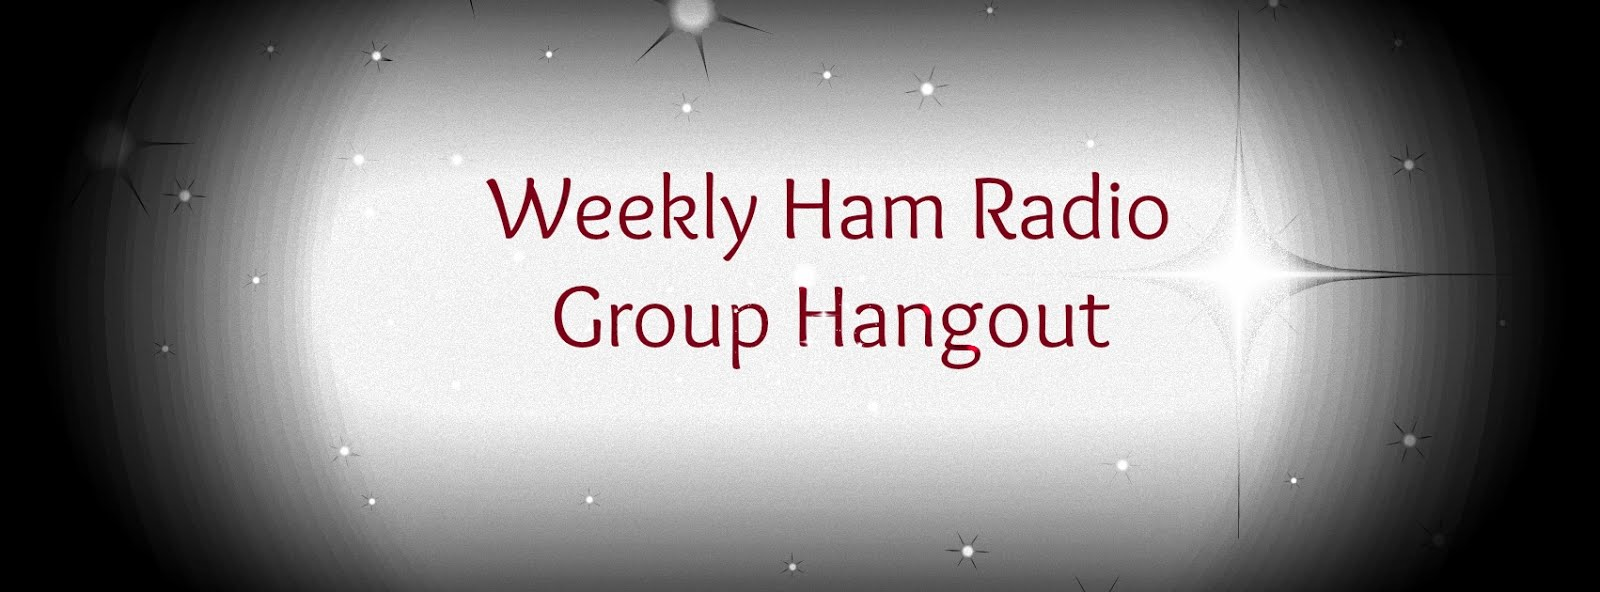 WEEKLY HAM RADIO GROUP HANGOUT